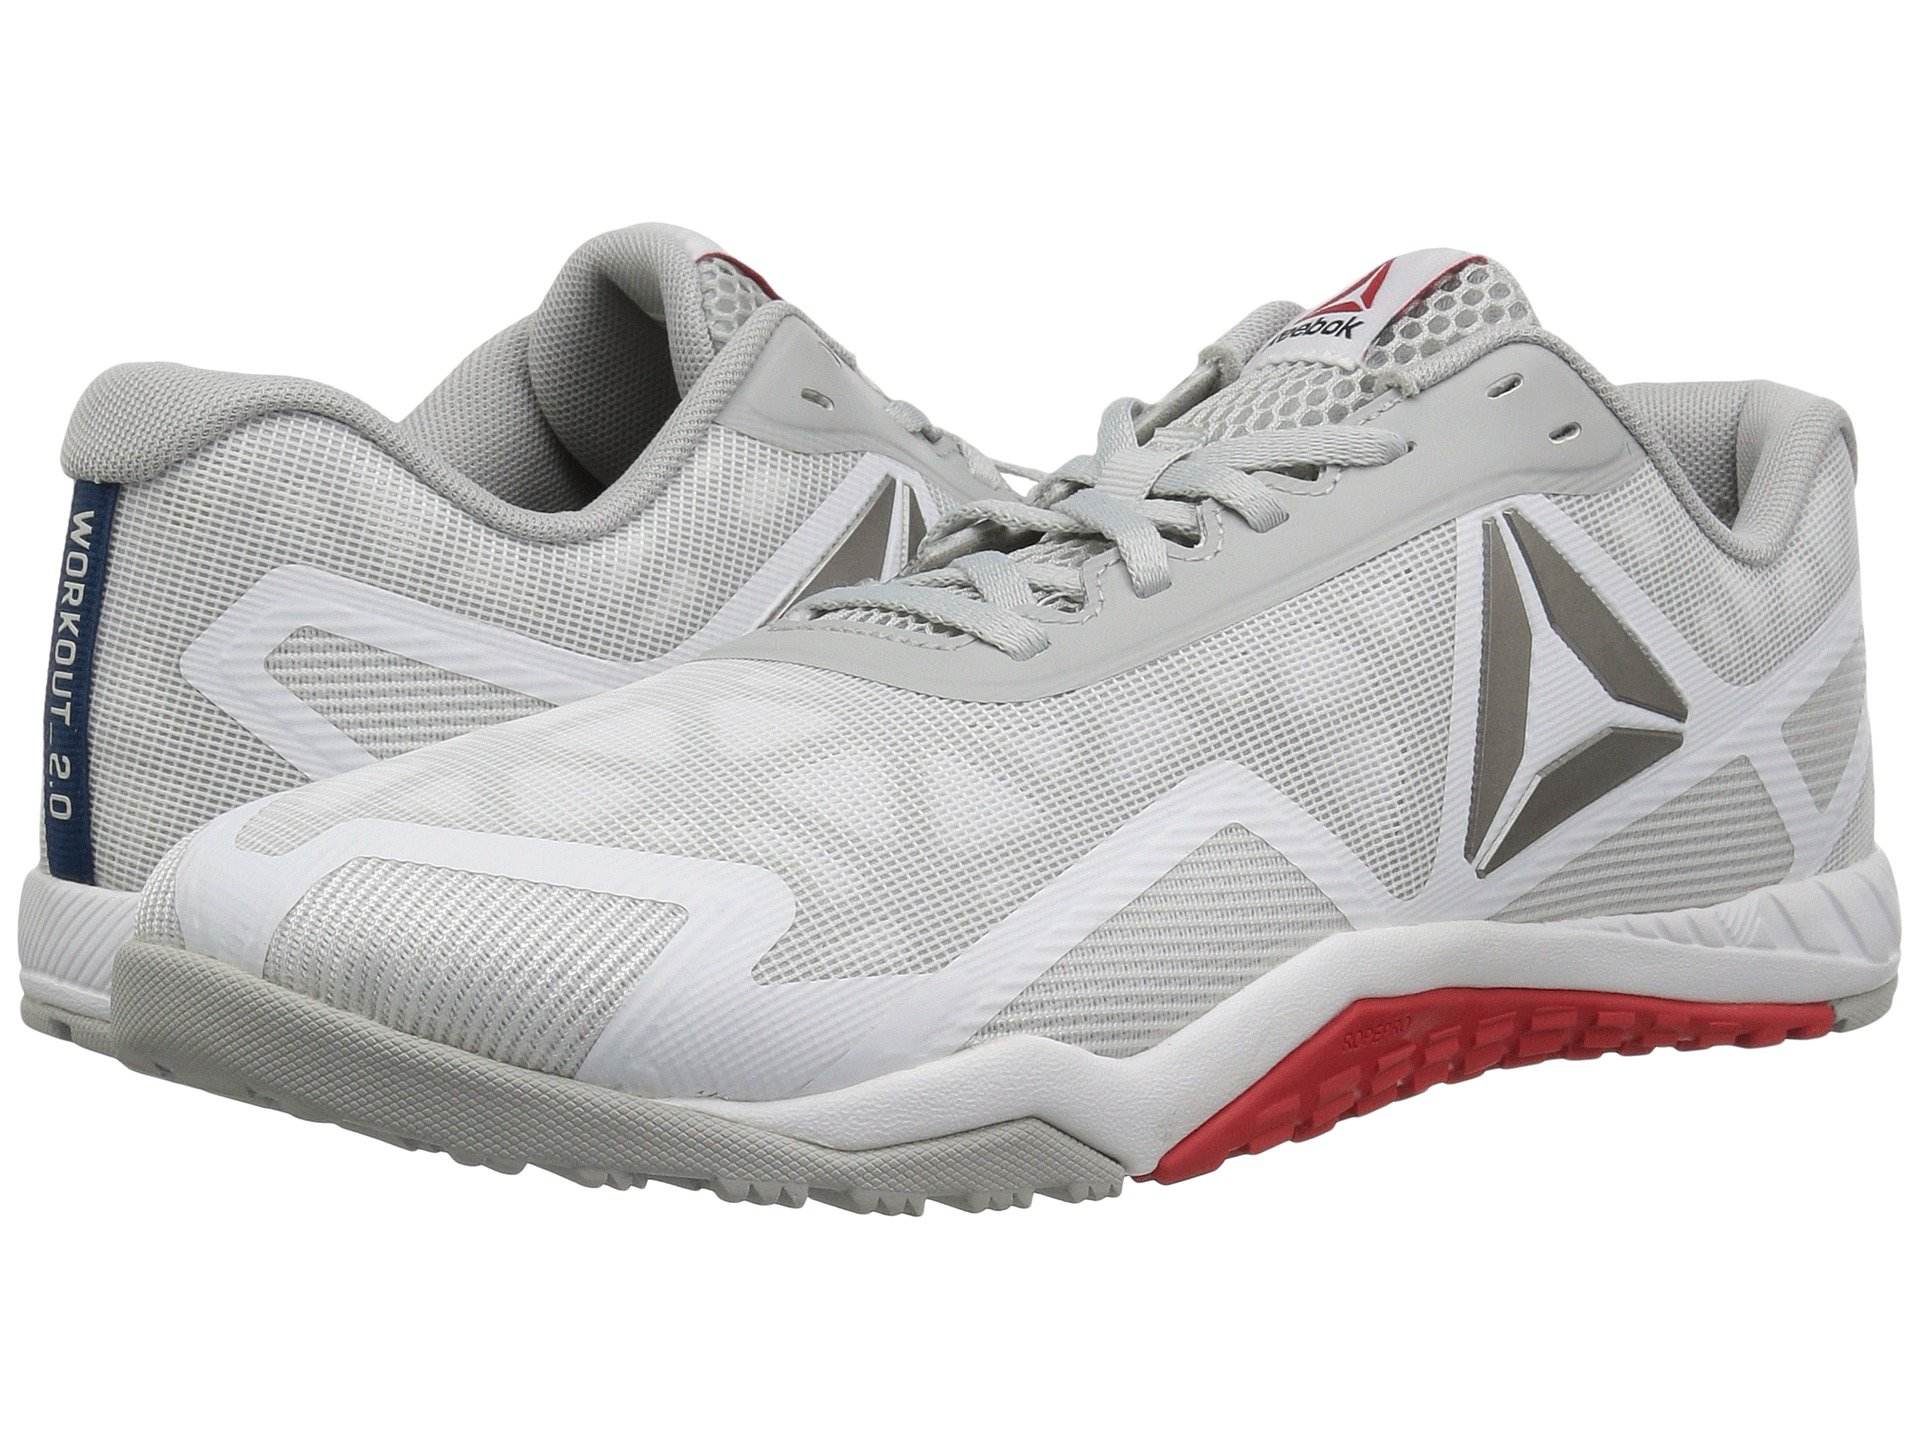 43710facf9e Reebok Ros Workout Tr 2.0 In White Skull Grey Riot Red Noble Blue ...